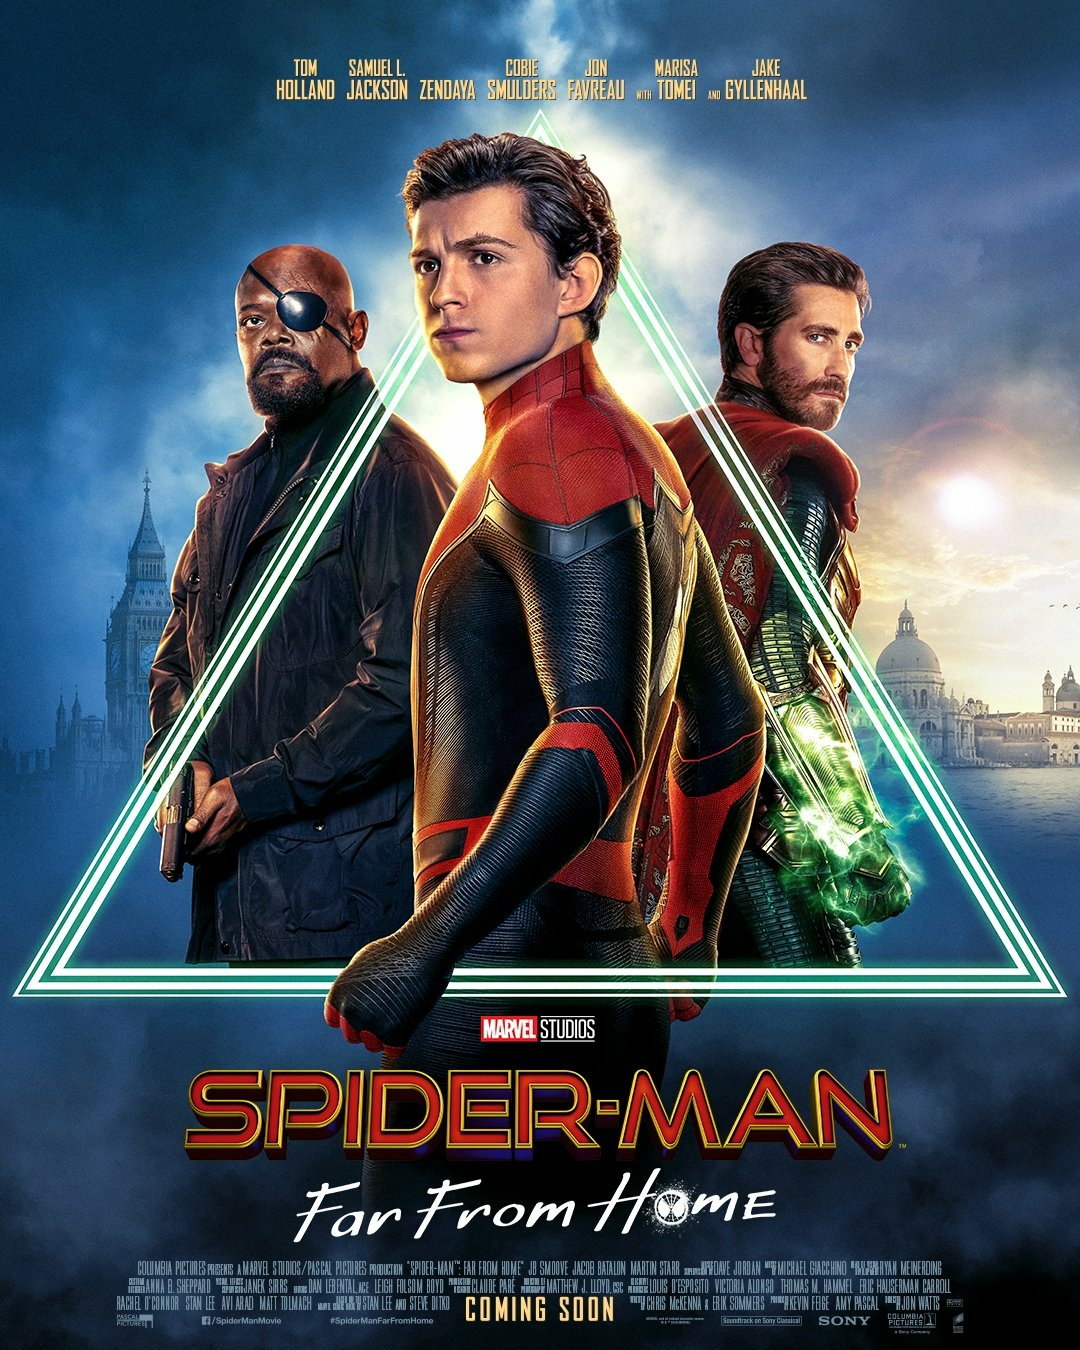 Spider-Man: Far From Home - July 2nd, 2019